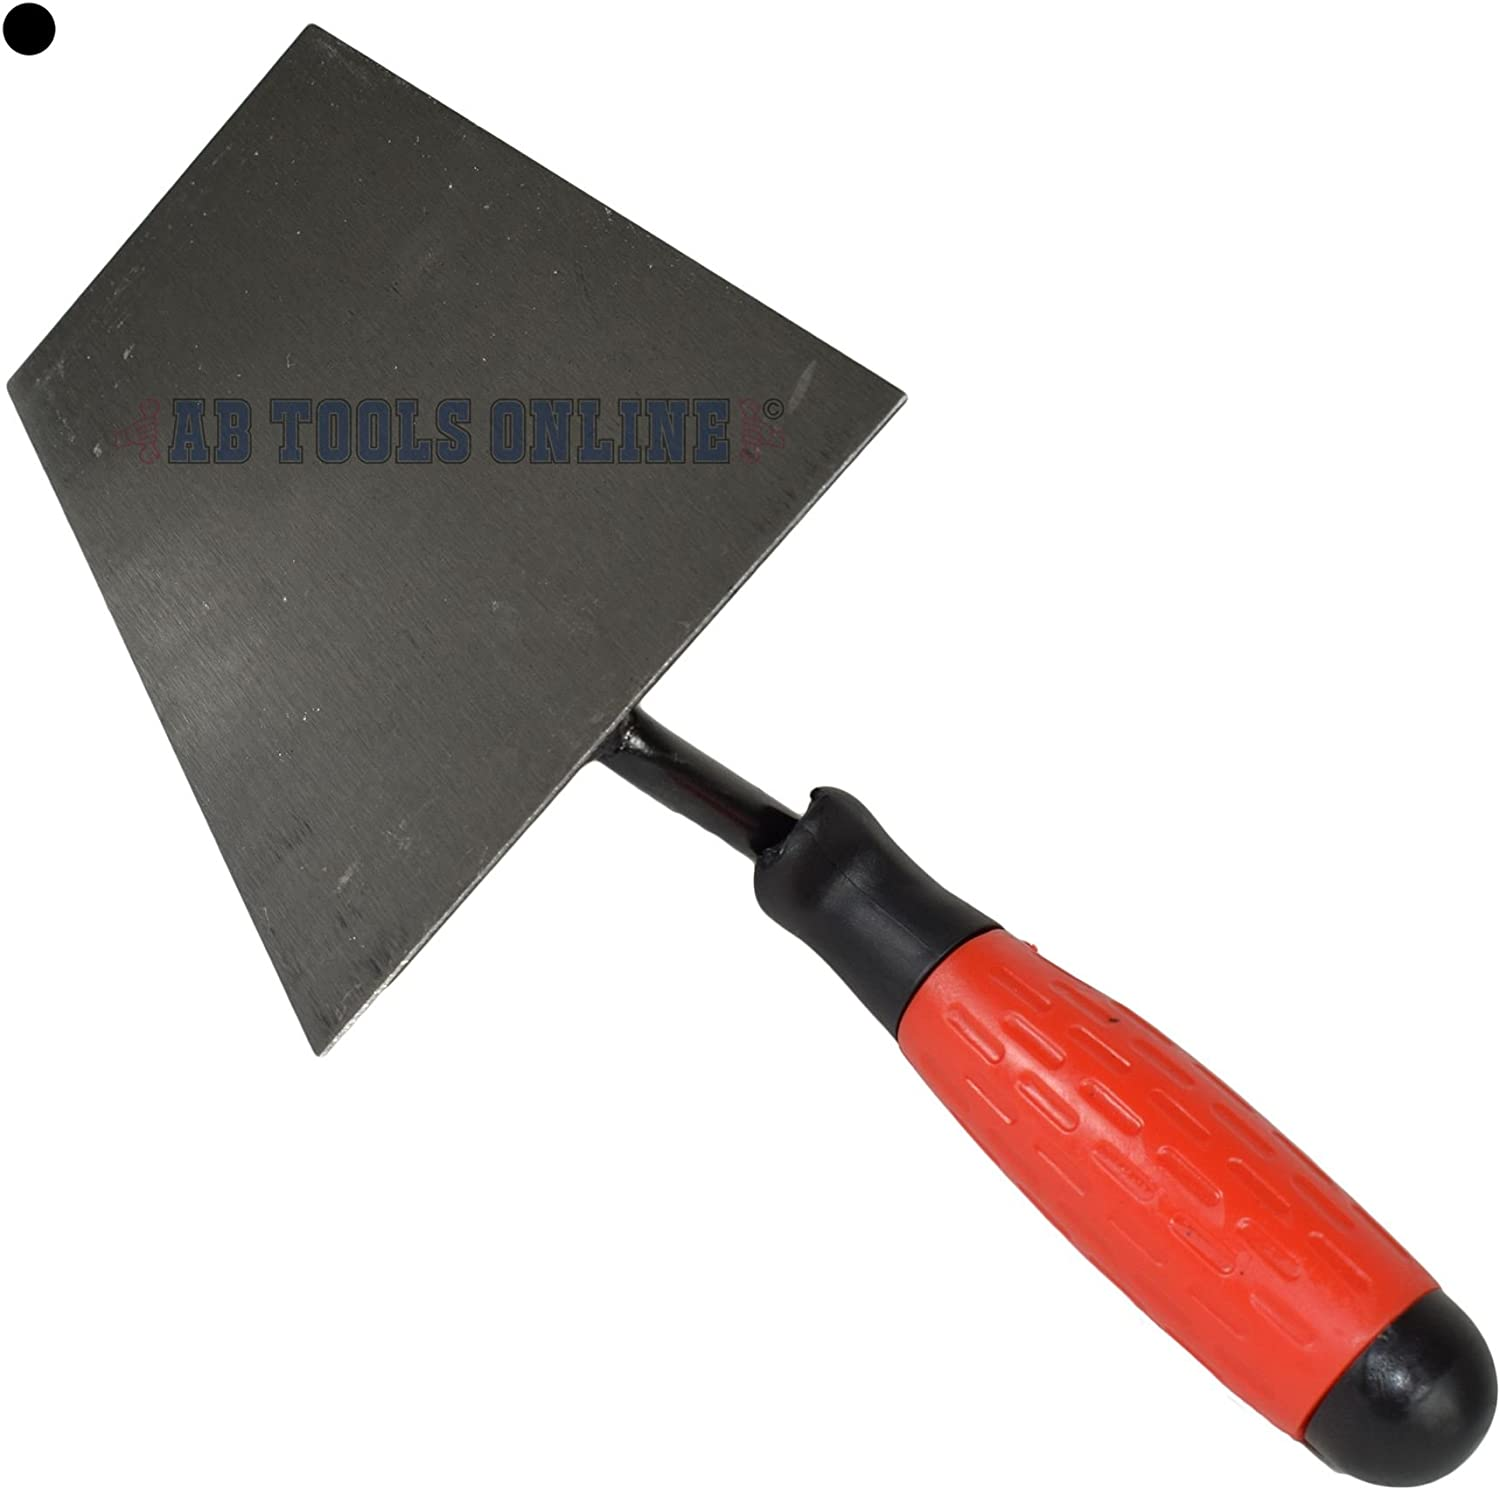 180mm Long Bucket Trowel Brick Block Laying with Rubber Soft Grip Handle